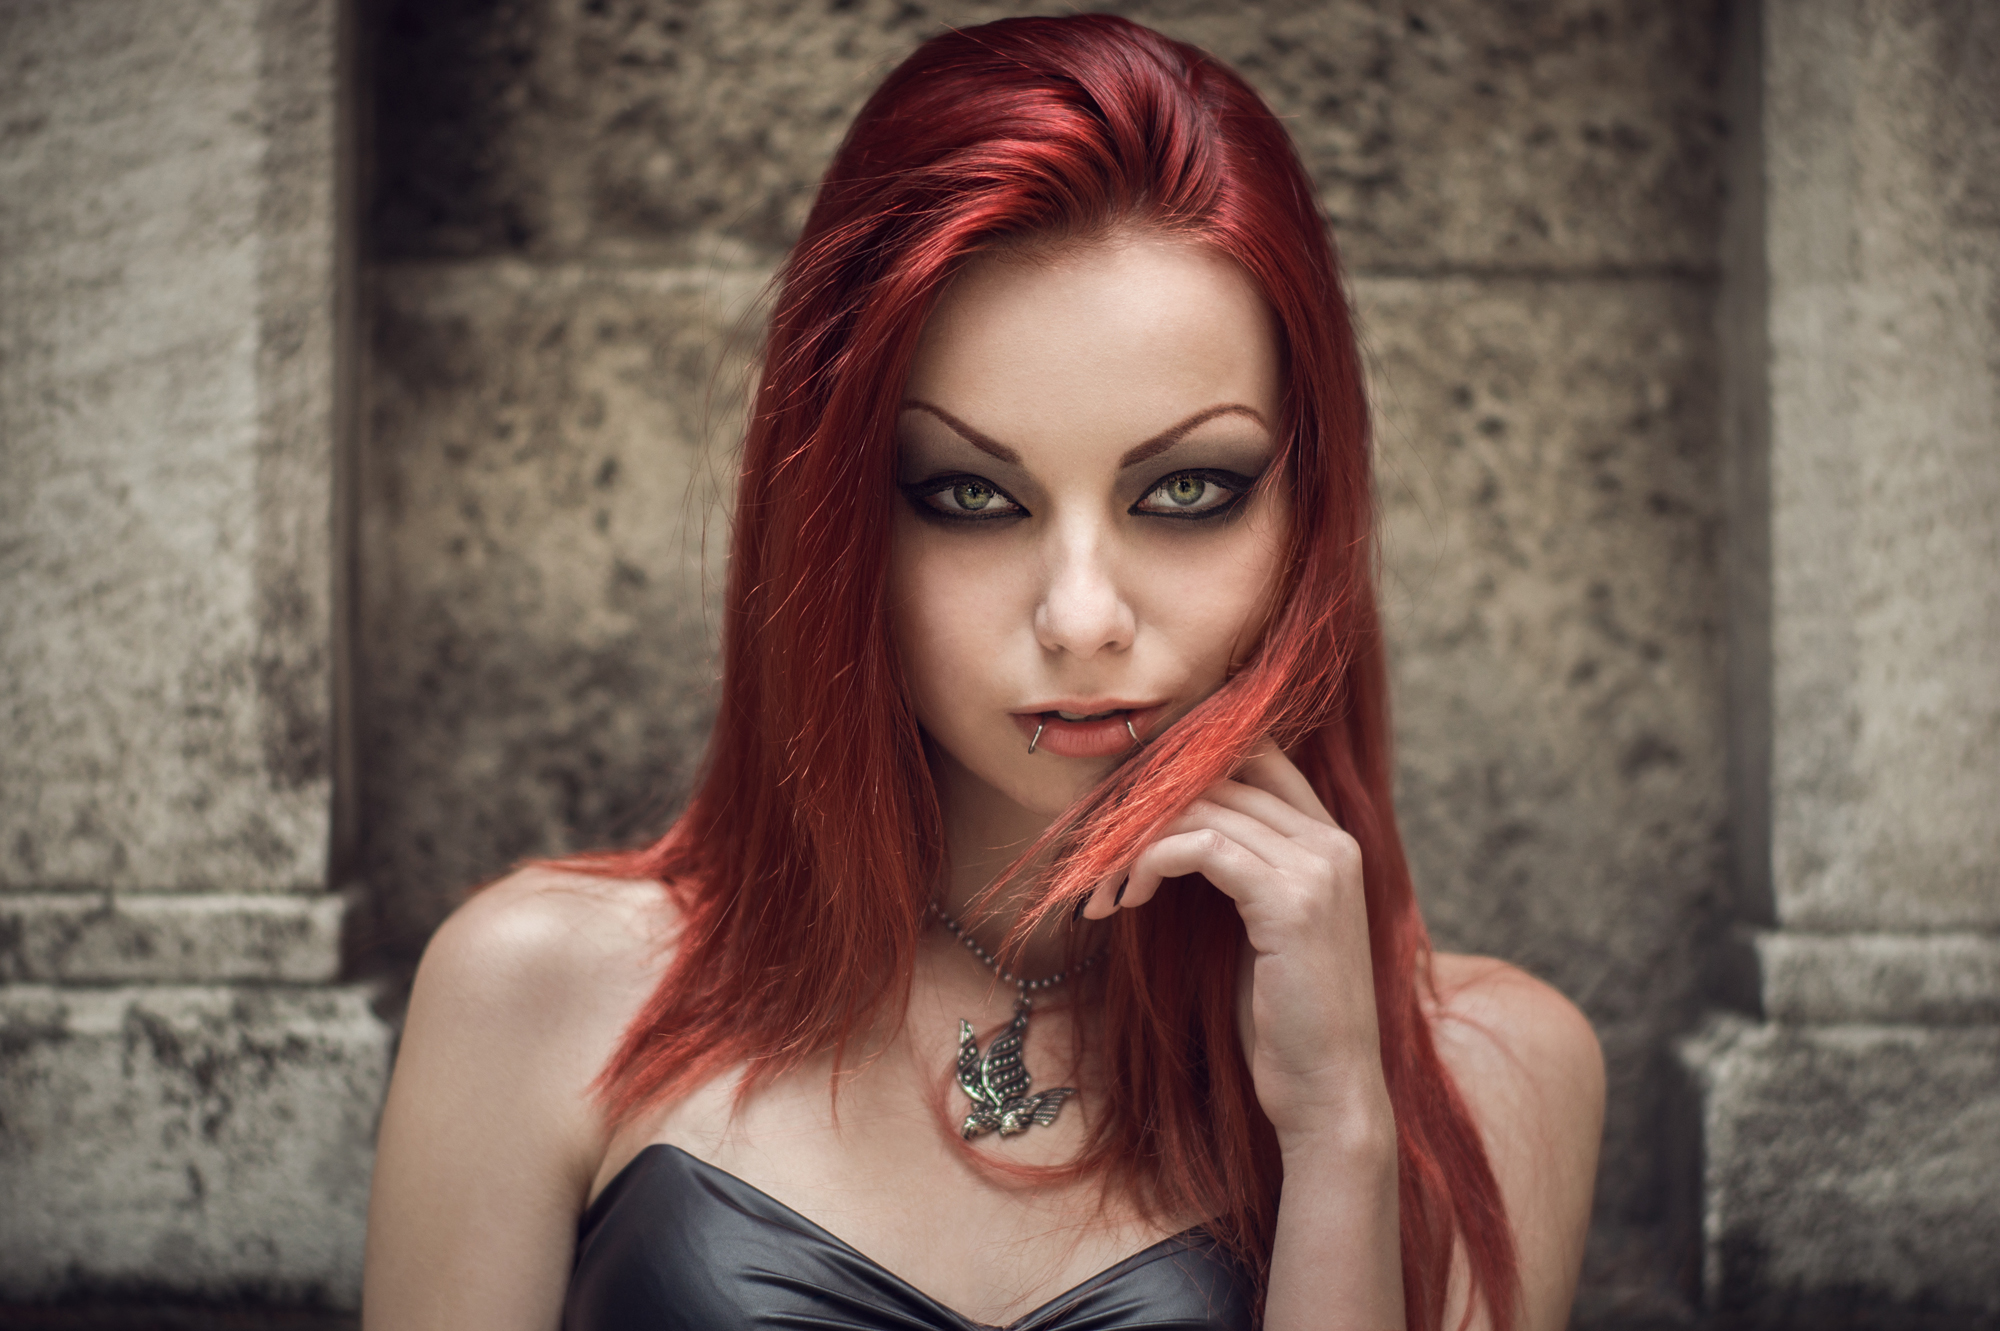 dark red hair photography